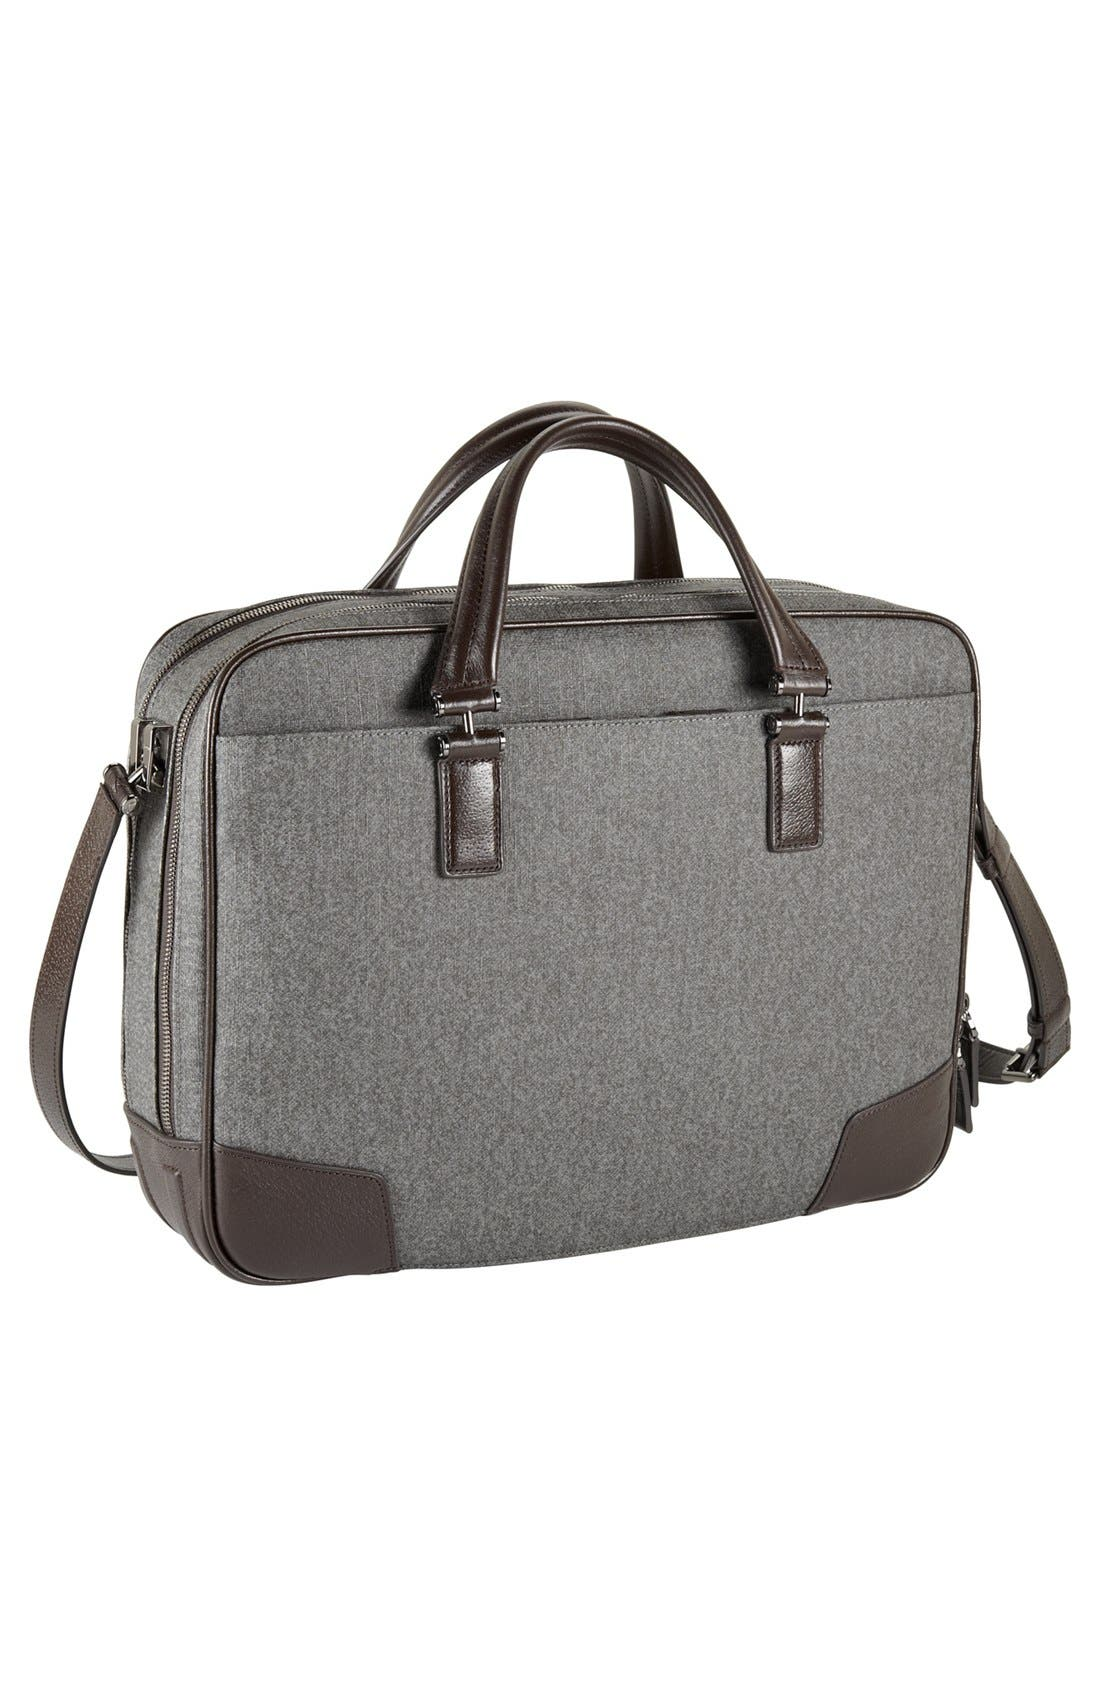 'Astor Ansonia' Zip Top Coated Canvas Laptop Briefcase,                             Alternate thumbnail 5, color,                             068